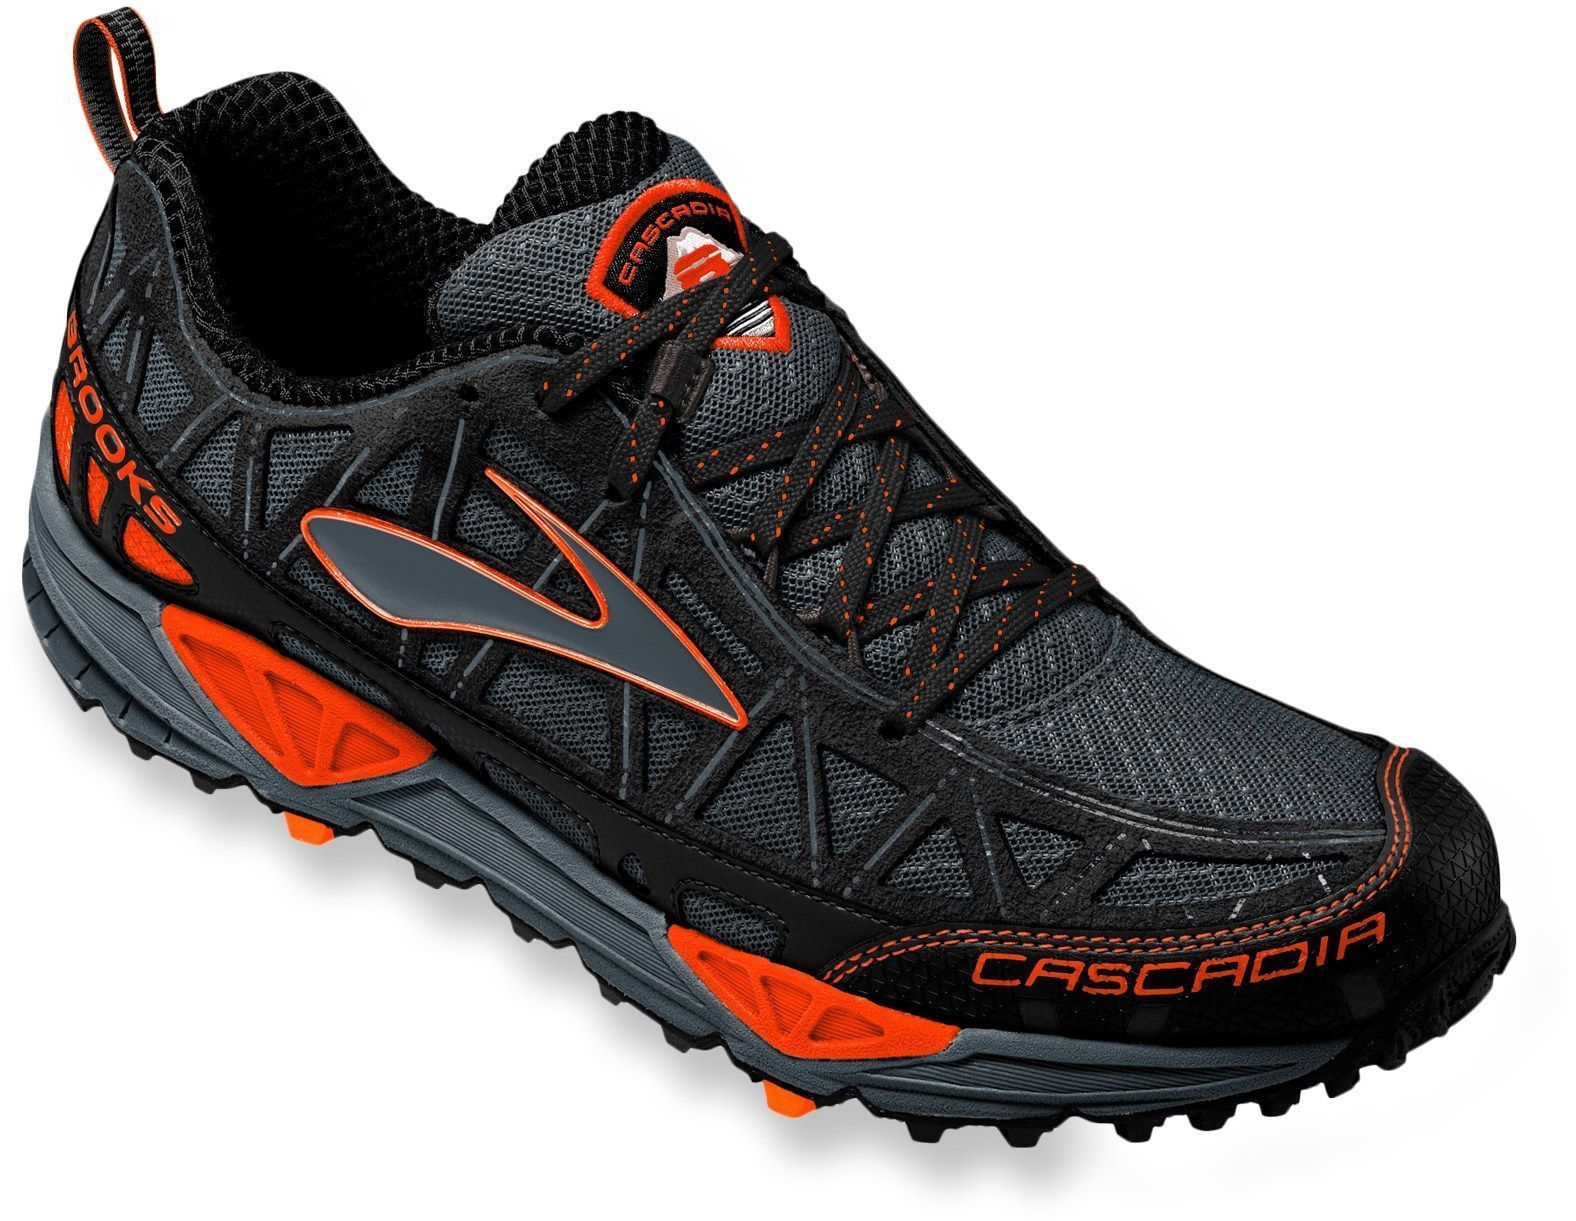 2561847f1 The traction and responsive supportive to tackle ultras or quick outings  through local trails—Men s